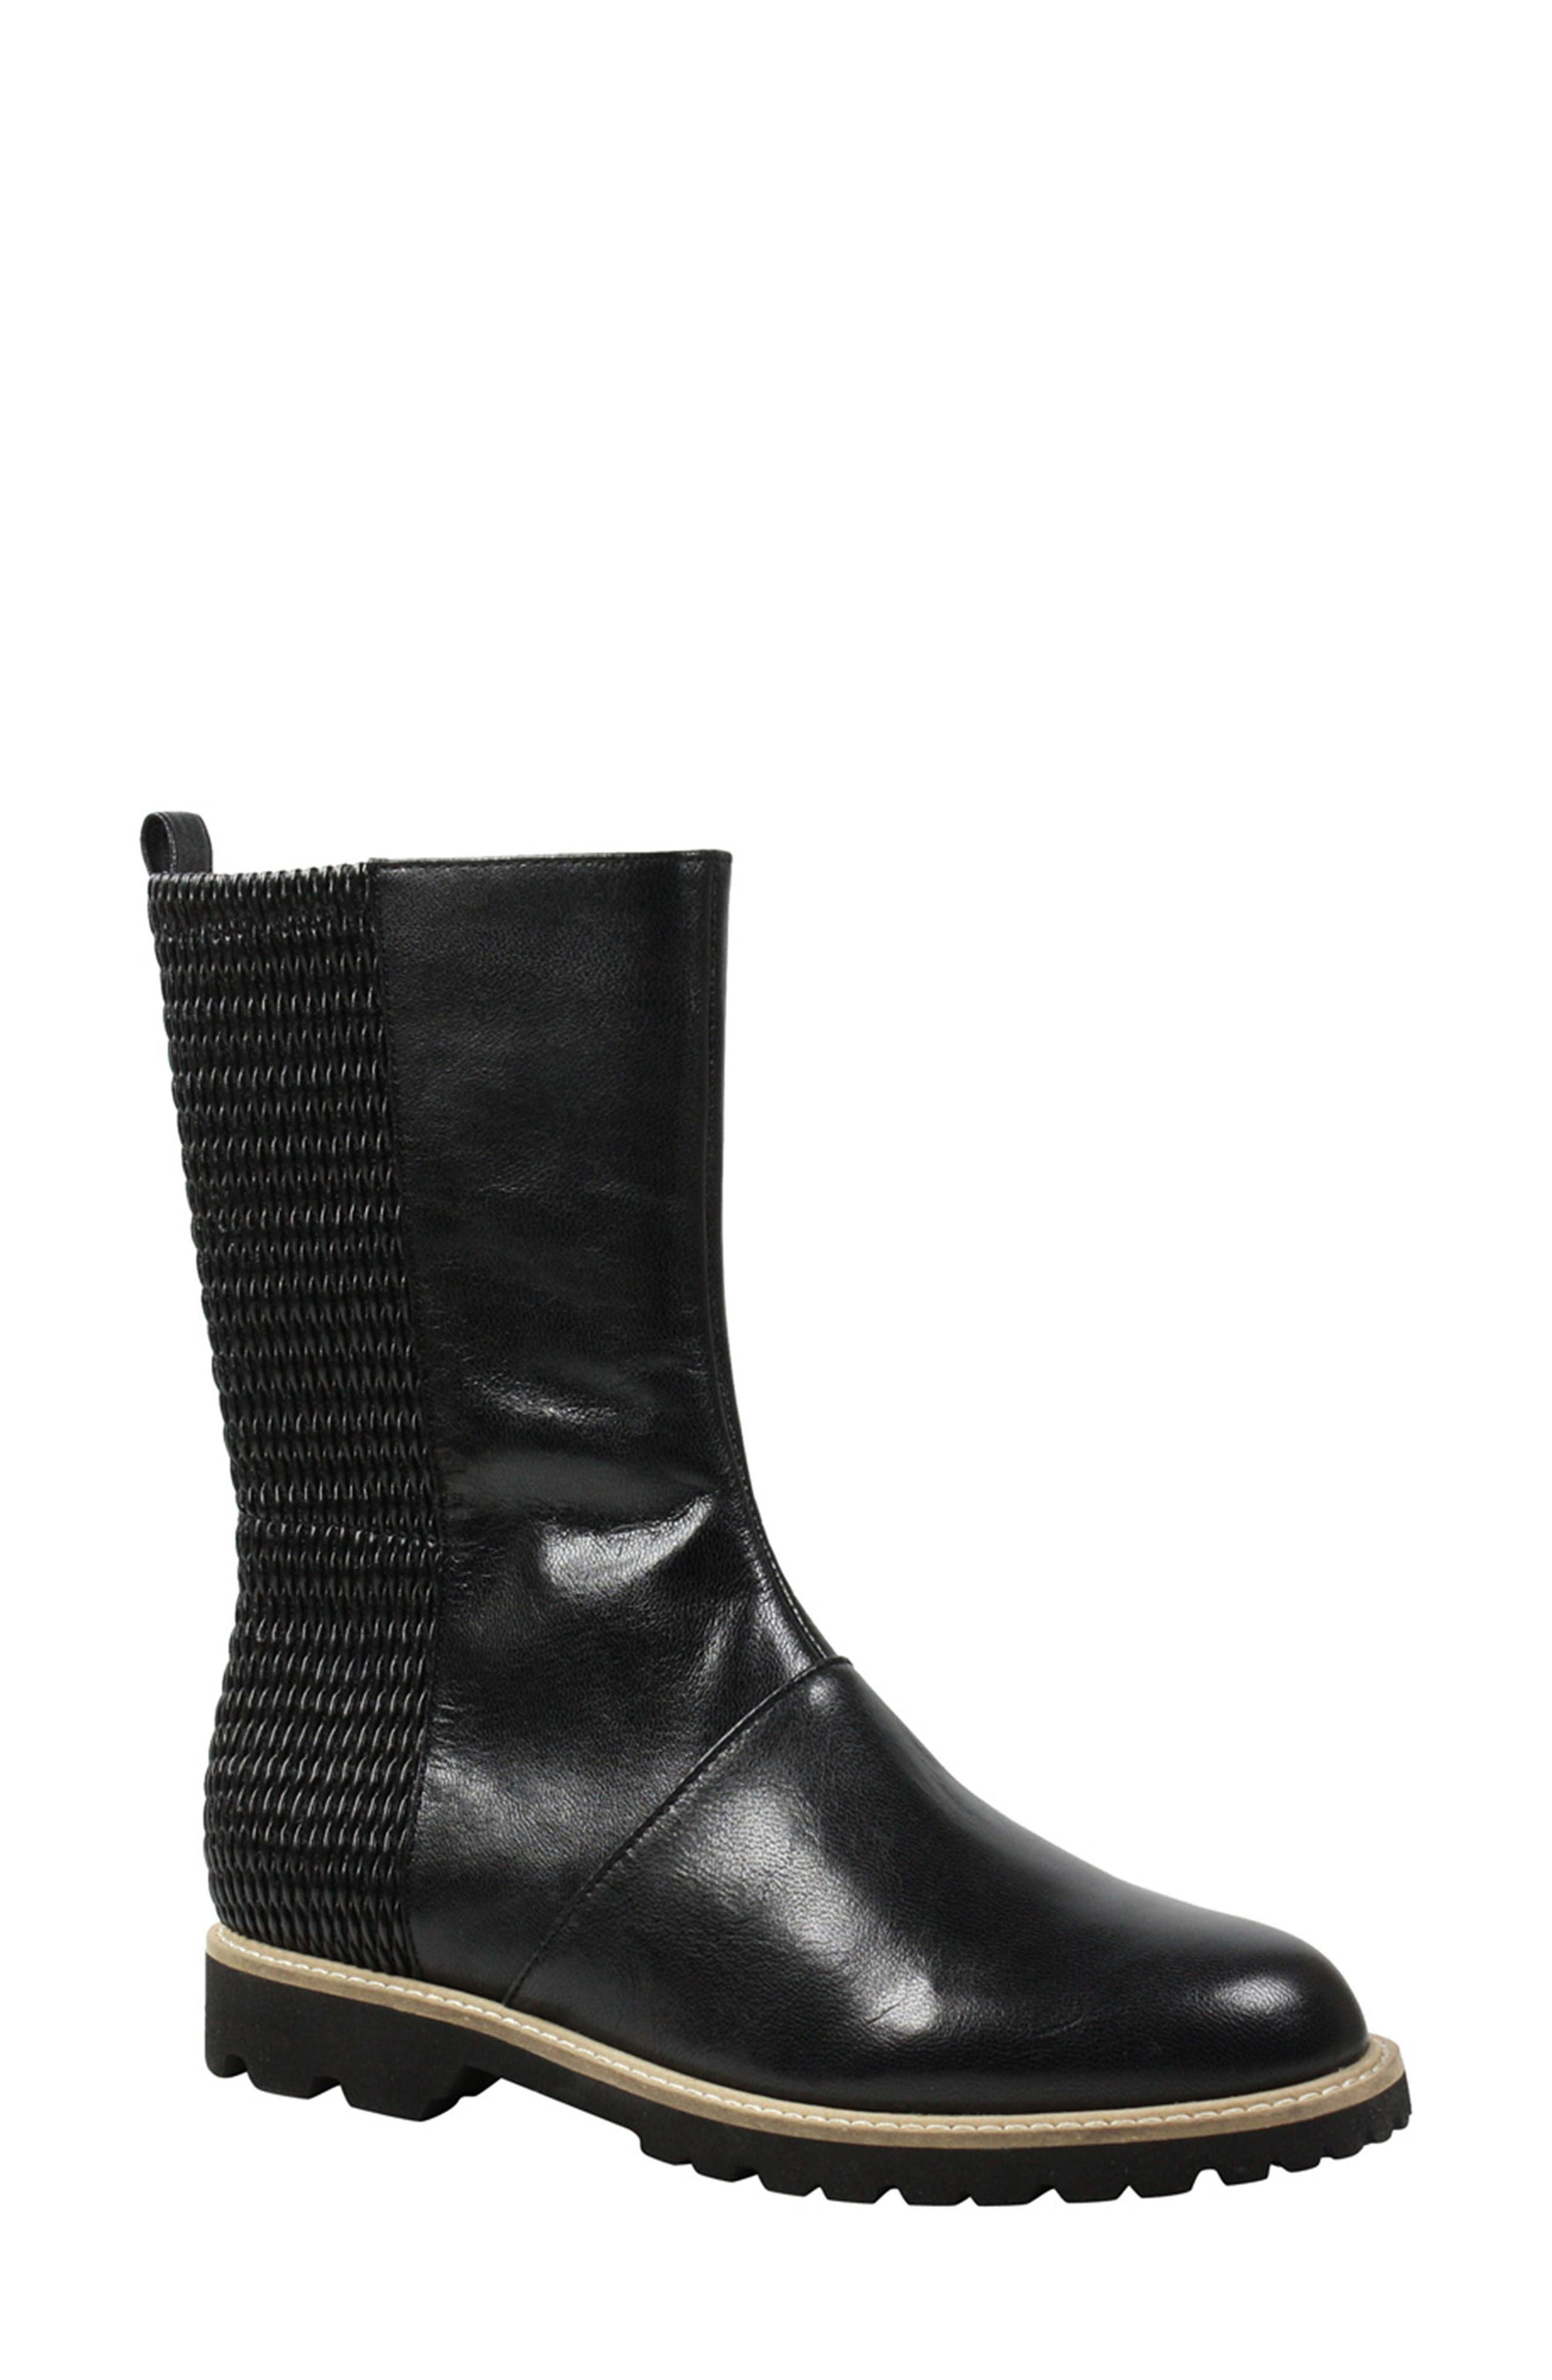 Reyney Boot,                             Main thumbnail 1, color,                             Black Leather